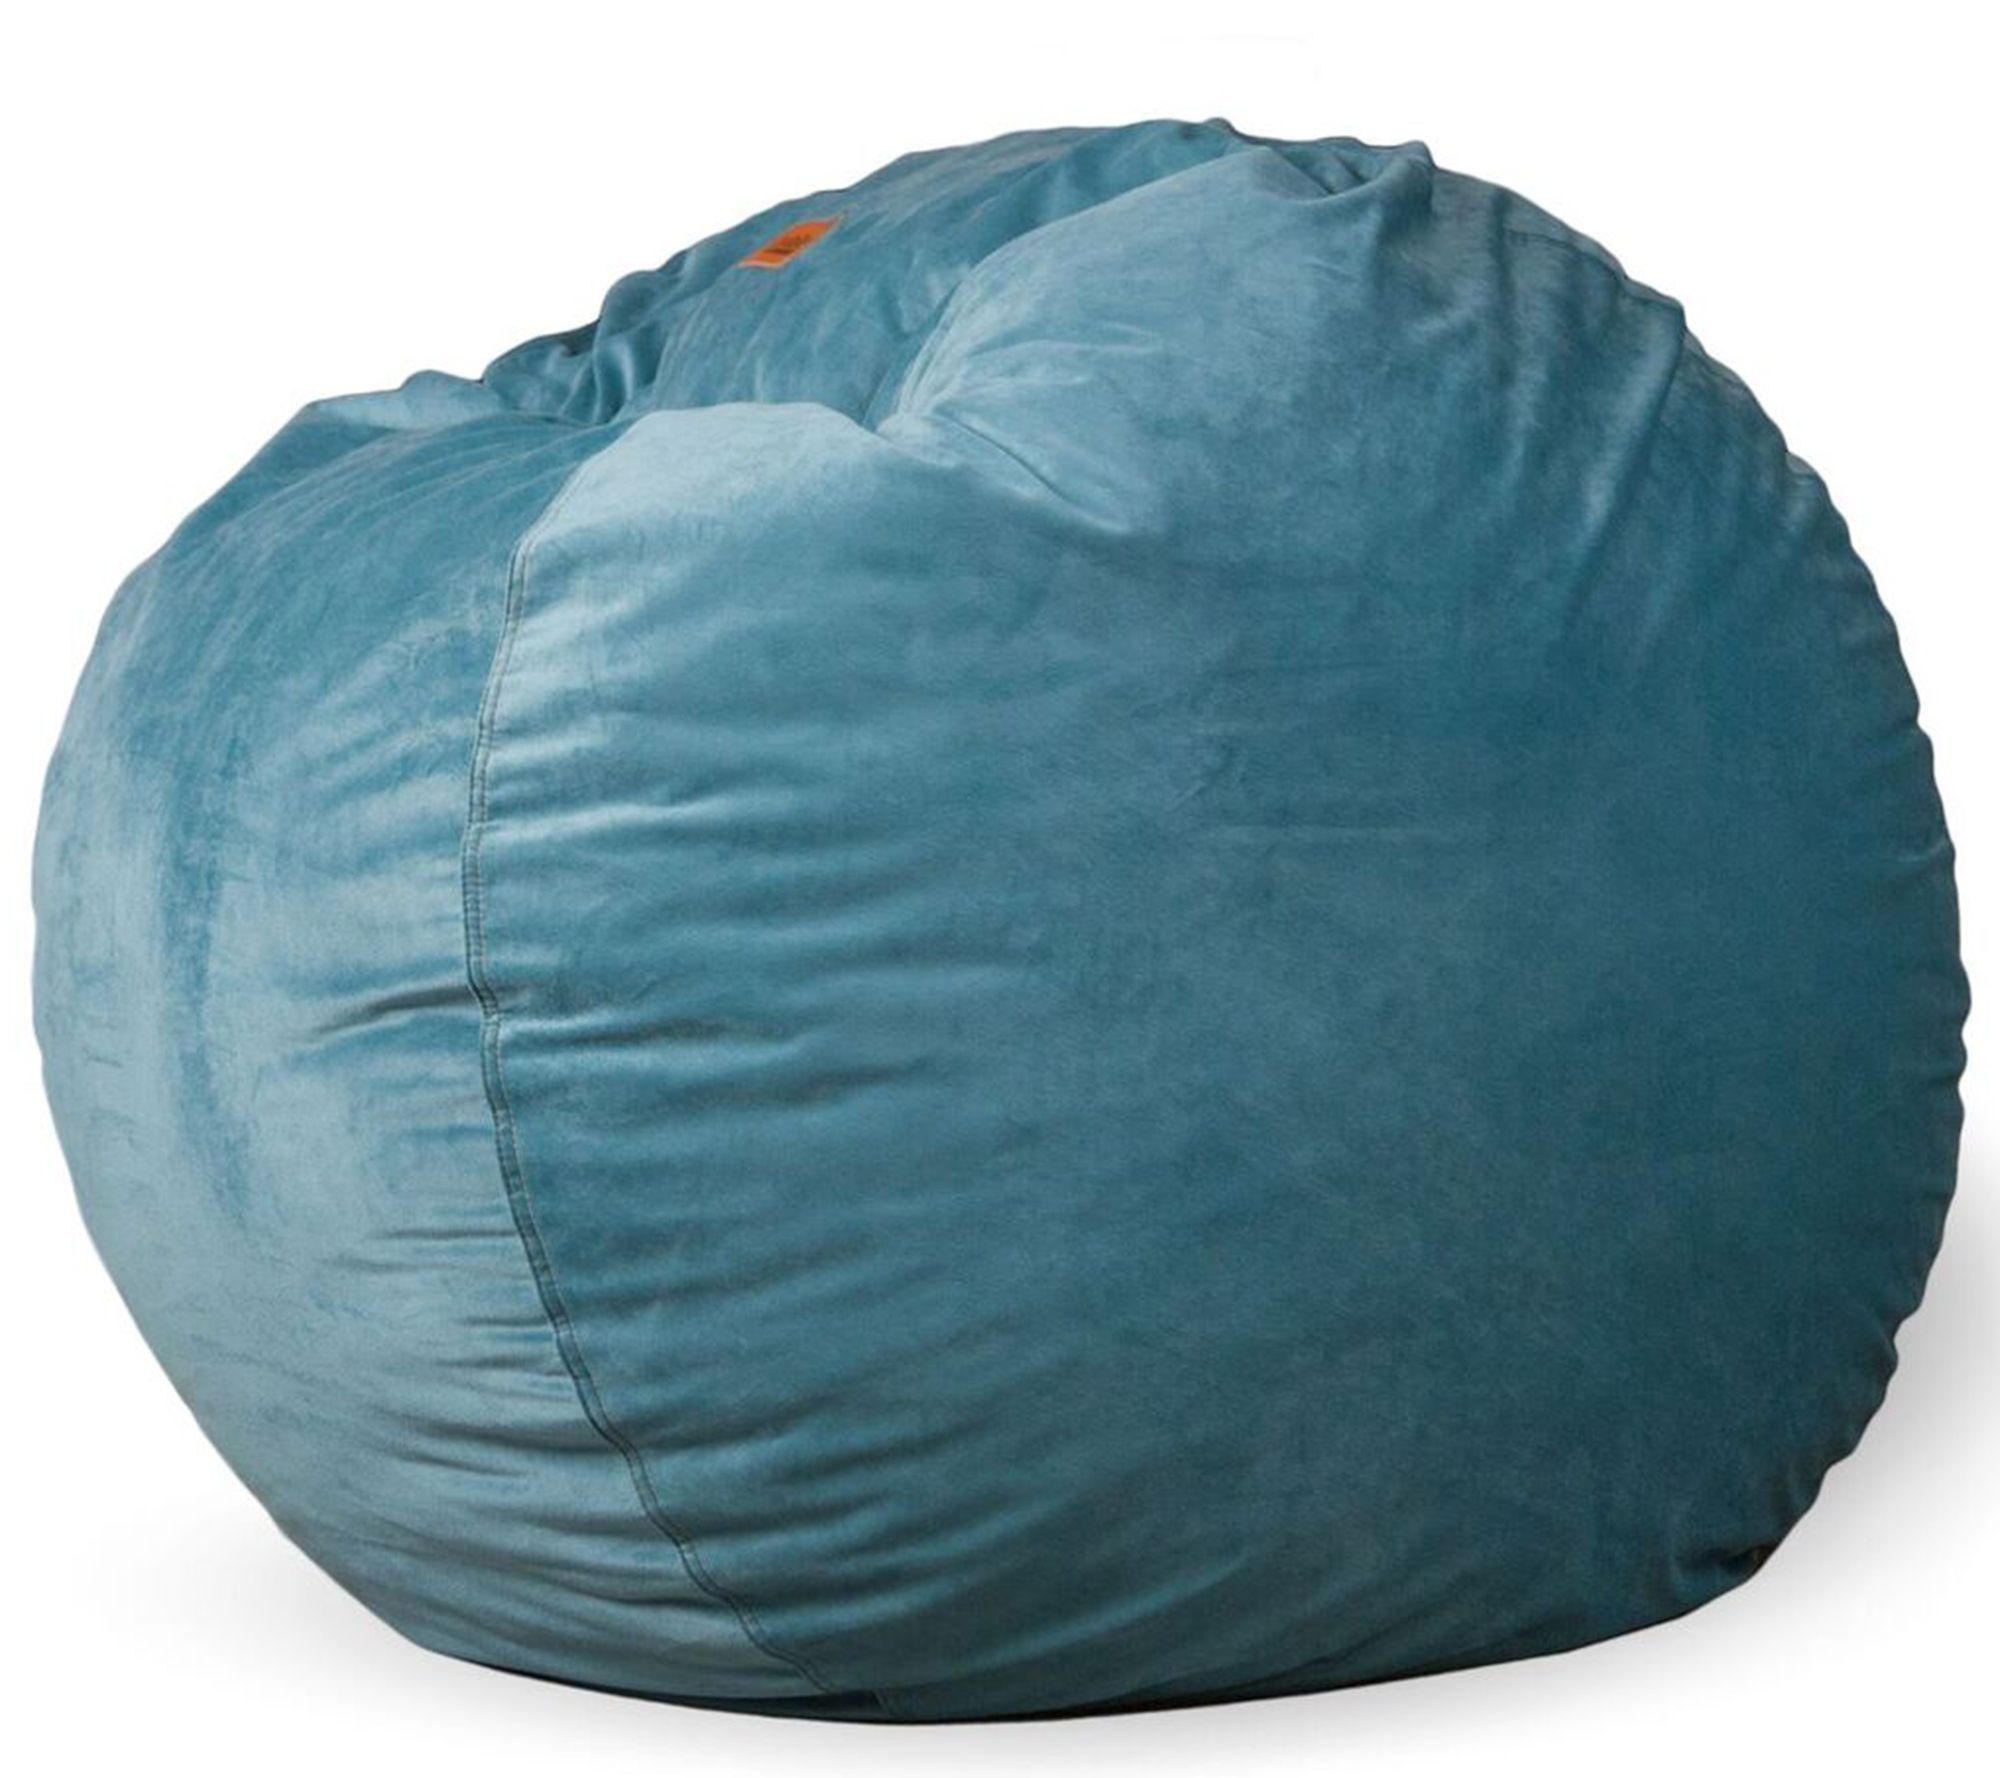 Excellent Cordaroys Full Size Convertible Bean Bag Chair By Lori Greiner Qvc Com Inzonedesignstudio Interior Chair Design Inzonedesignstudiocom